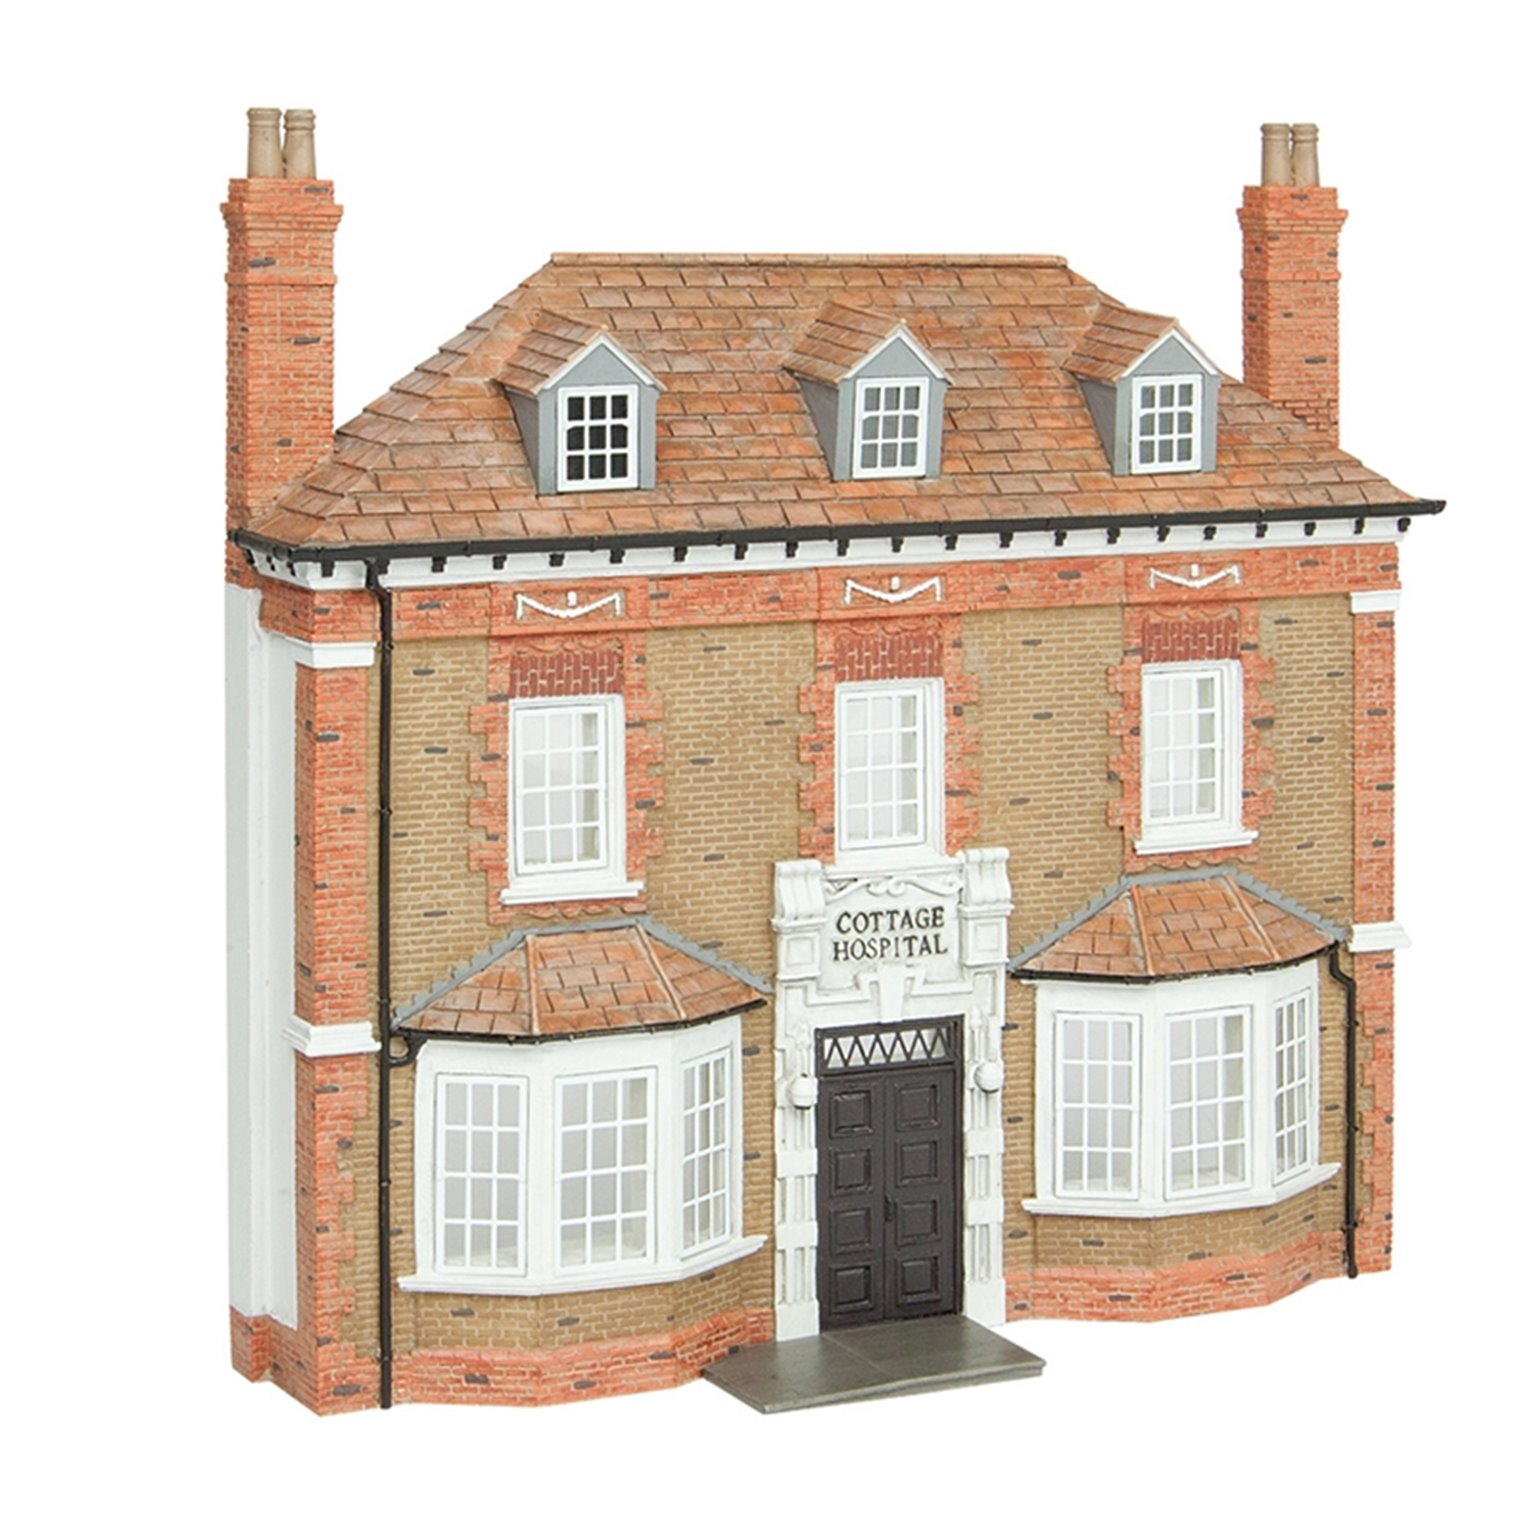 Low Relief Cottage Hospital